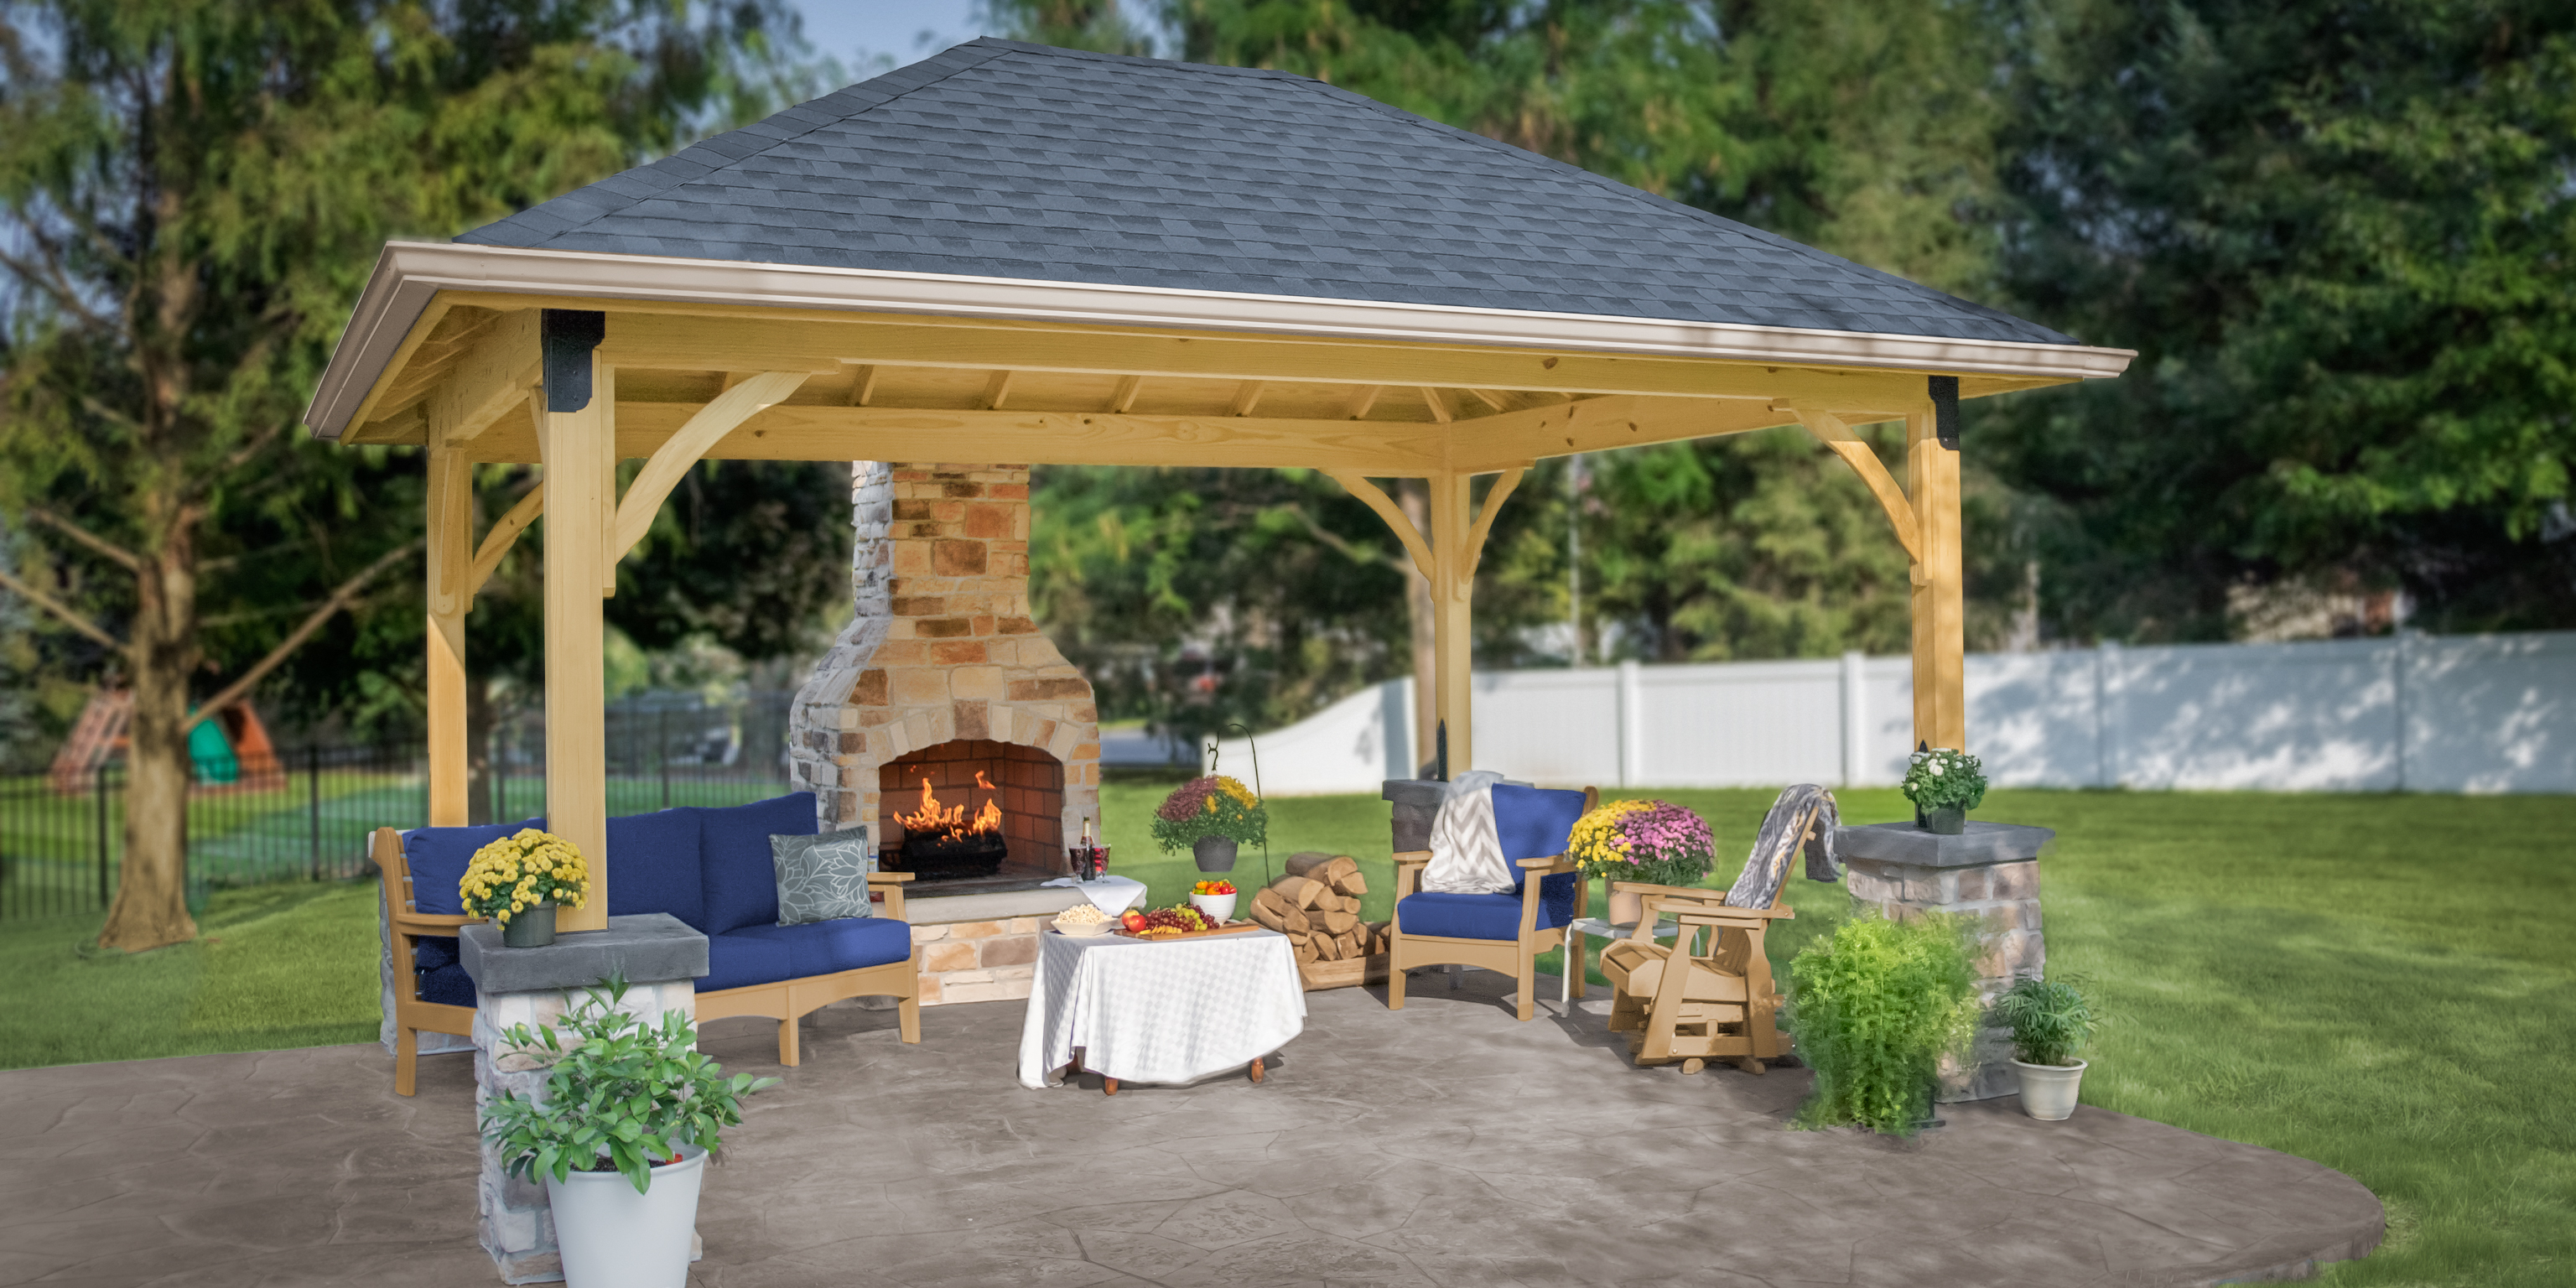 Pavilion Backyard Ideas For Your Outdoor Living Space for Pavilion Ideas Backyard